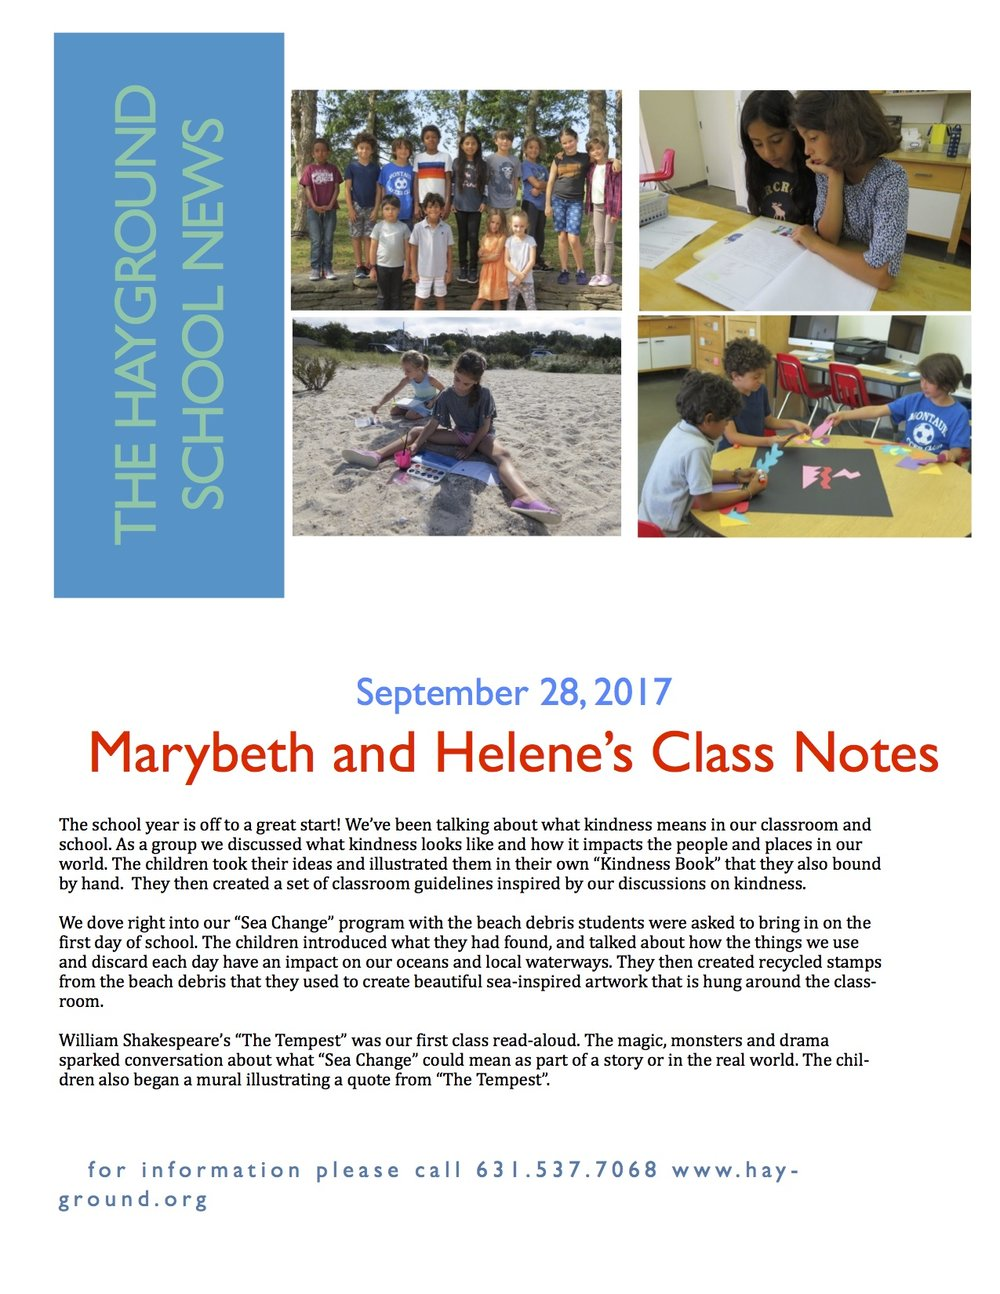 Class Notes 09-28-17 copy.jpg